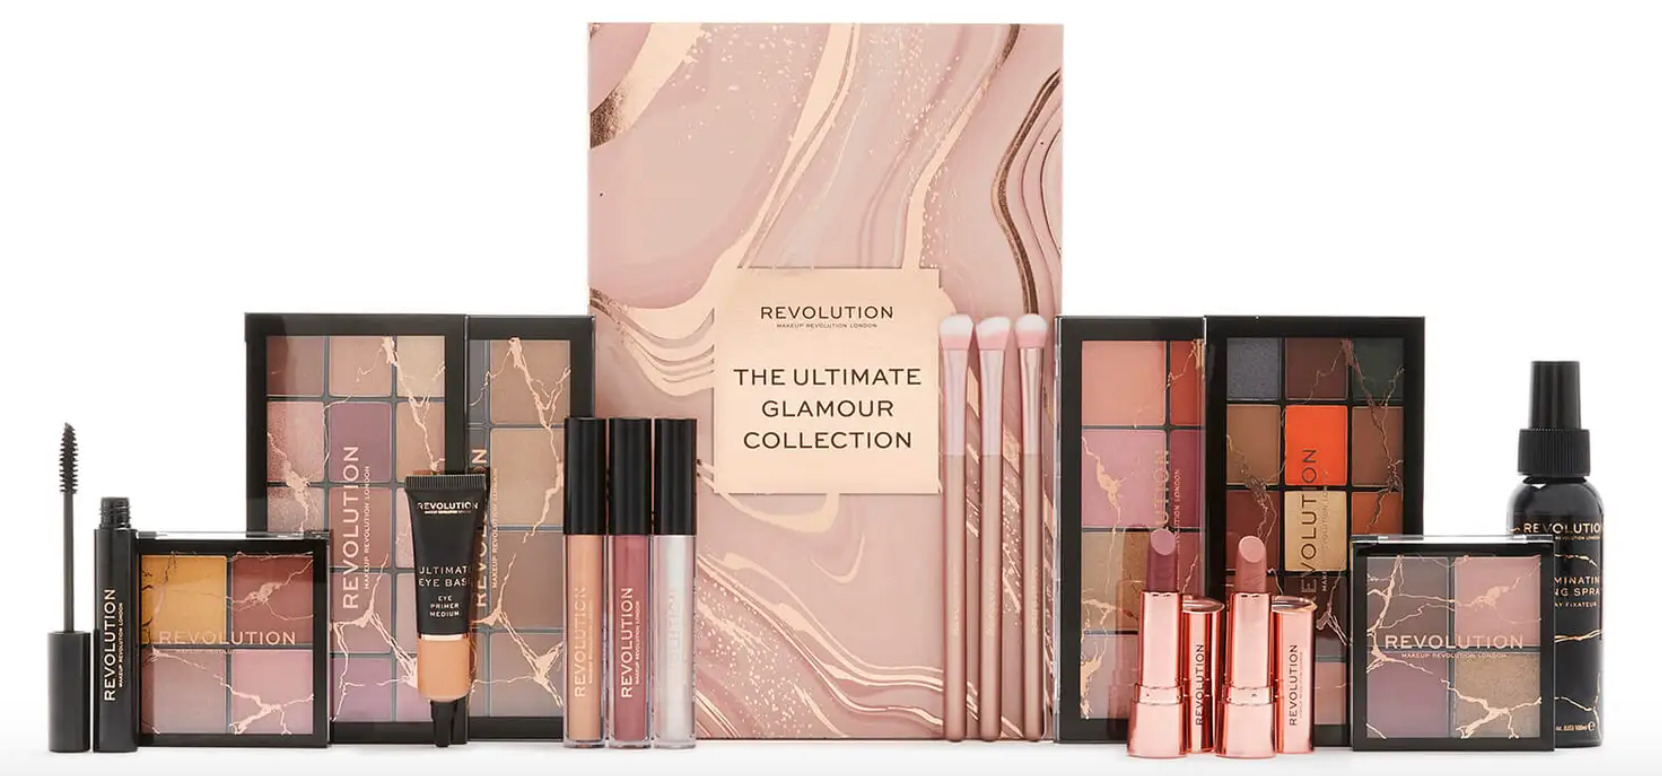 Revolution The Ultimate Glamour Collection